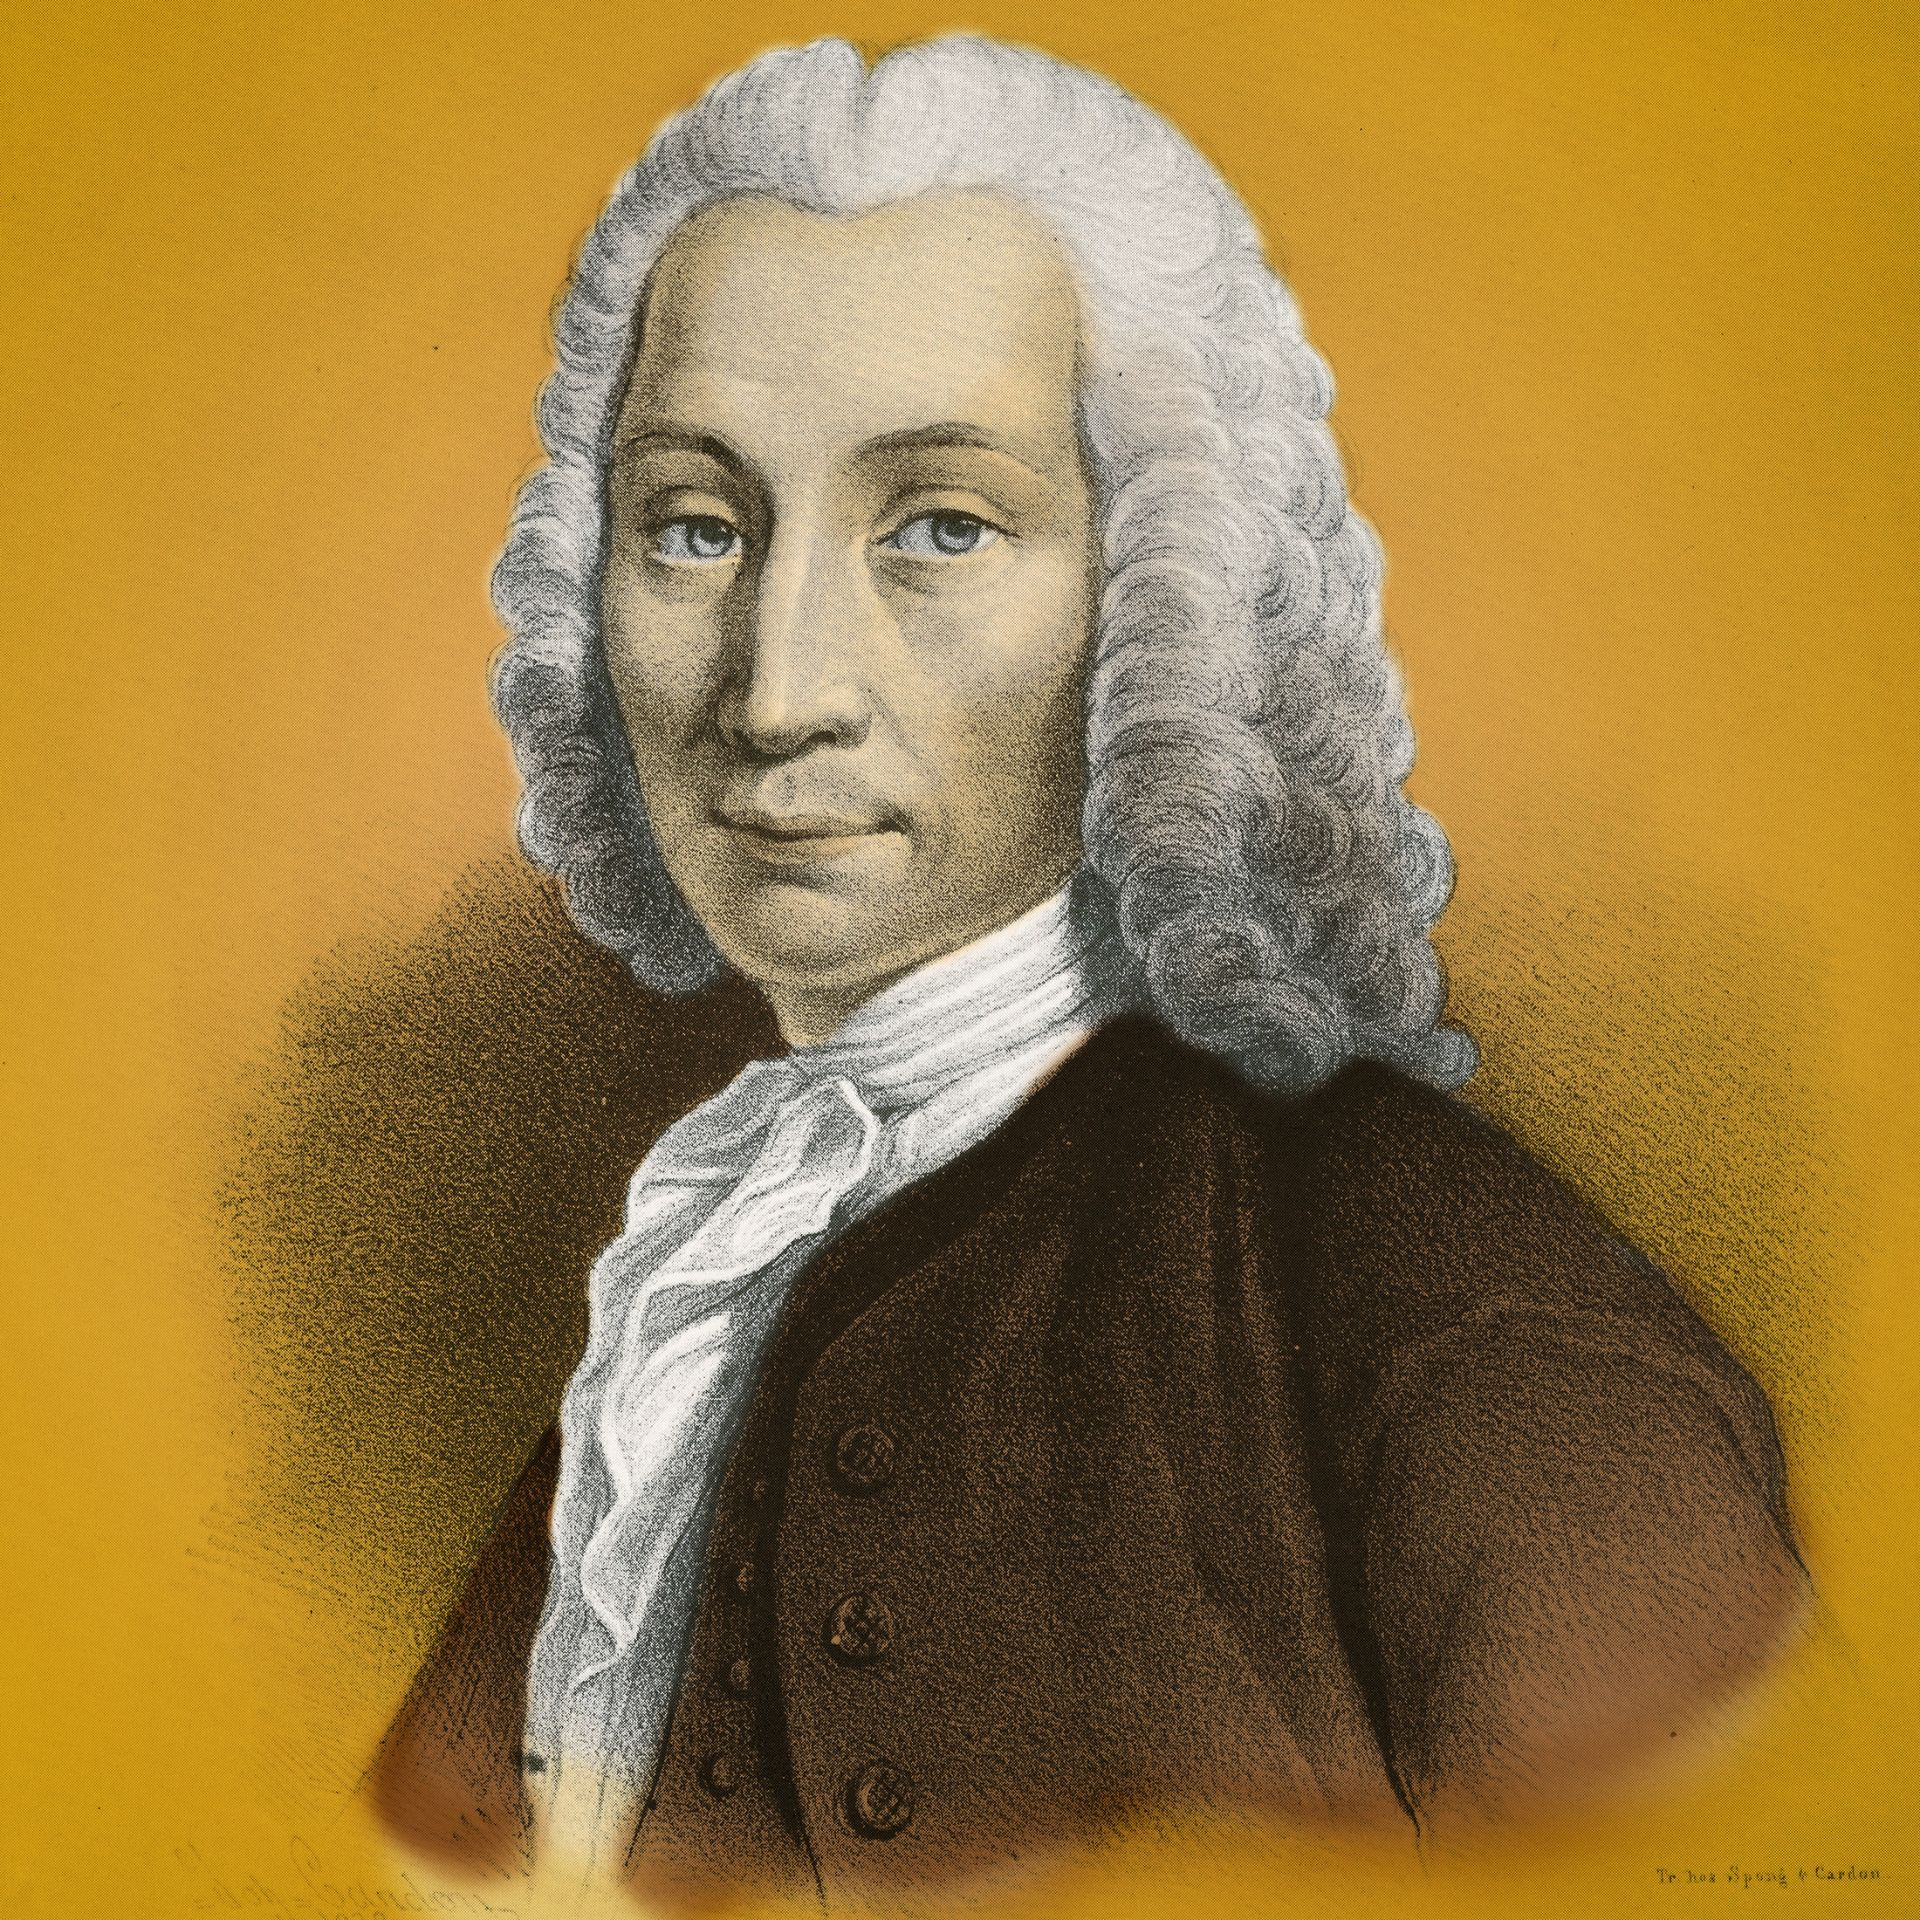 Anders Celsius Anders Celsius For Kids Dk Find Out